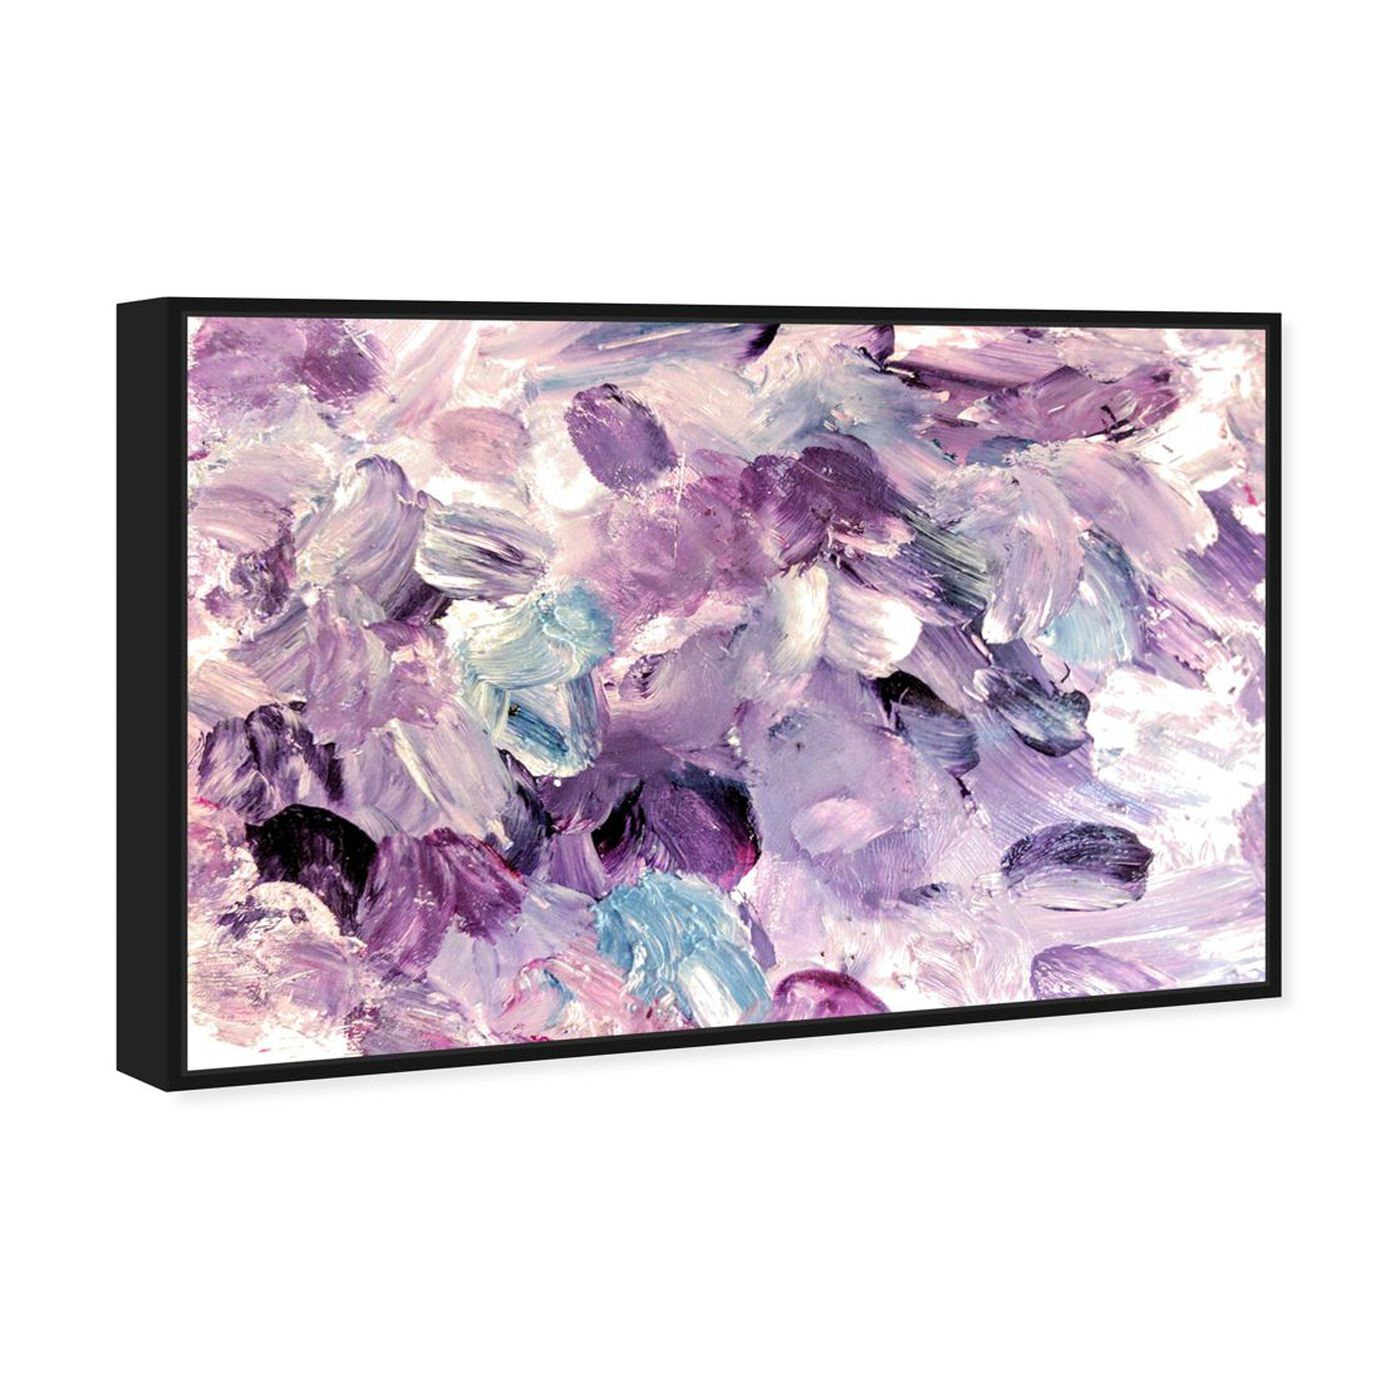 Angled view of Amethyst Gardens featuring abstract and paint art.